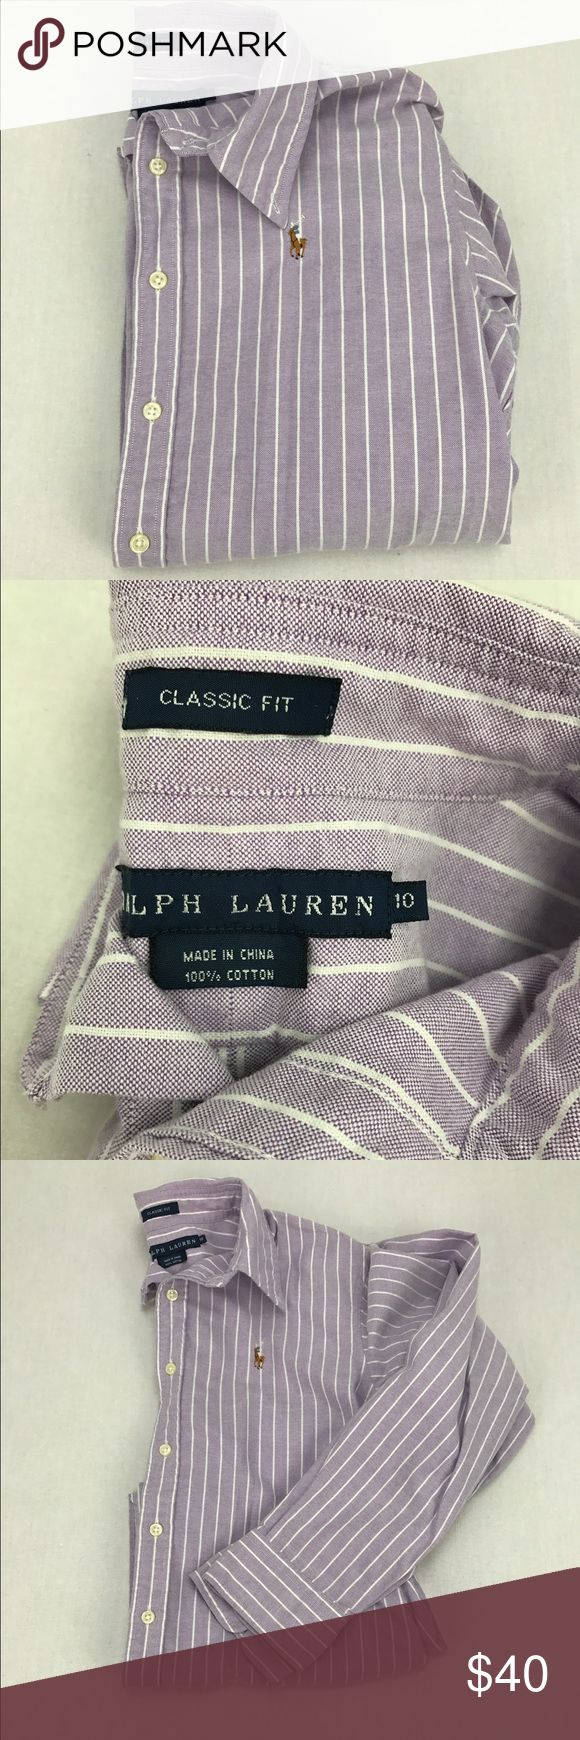 Ralph Lauren Oxford Button Down Shirt - Purple Ralph Lauren Women's Oxford Button Down Shirt in Purple Stripe. Size 10. Classic fit. Excellent condition. Open to offers and bundles! Please use the offer button. Let me know if you have any questions! Ralph Lauren Tops Button Down Shirts